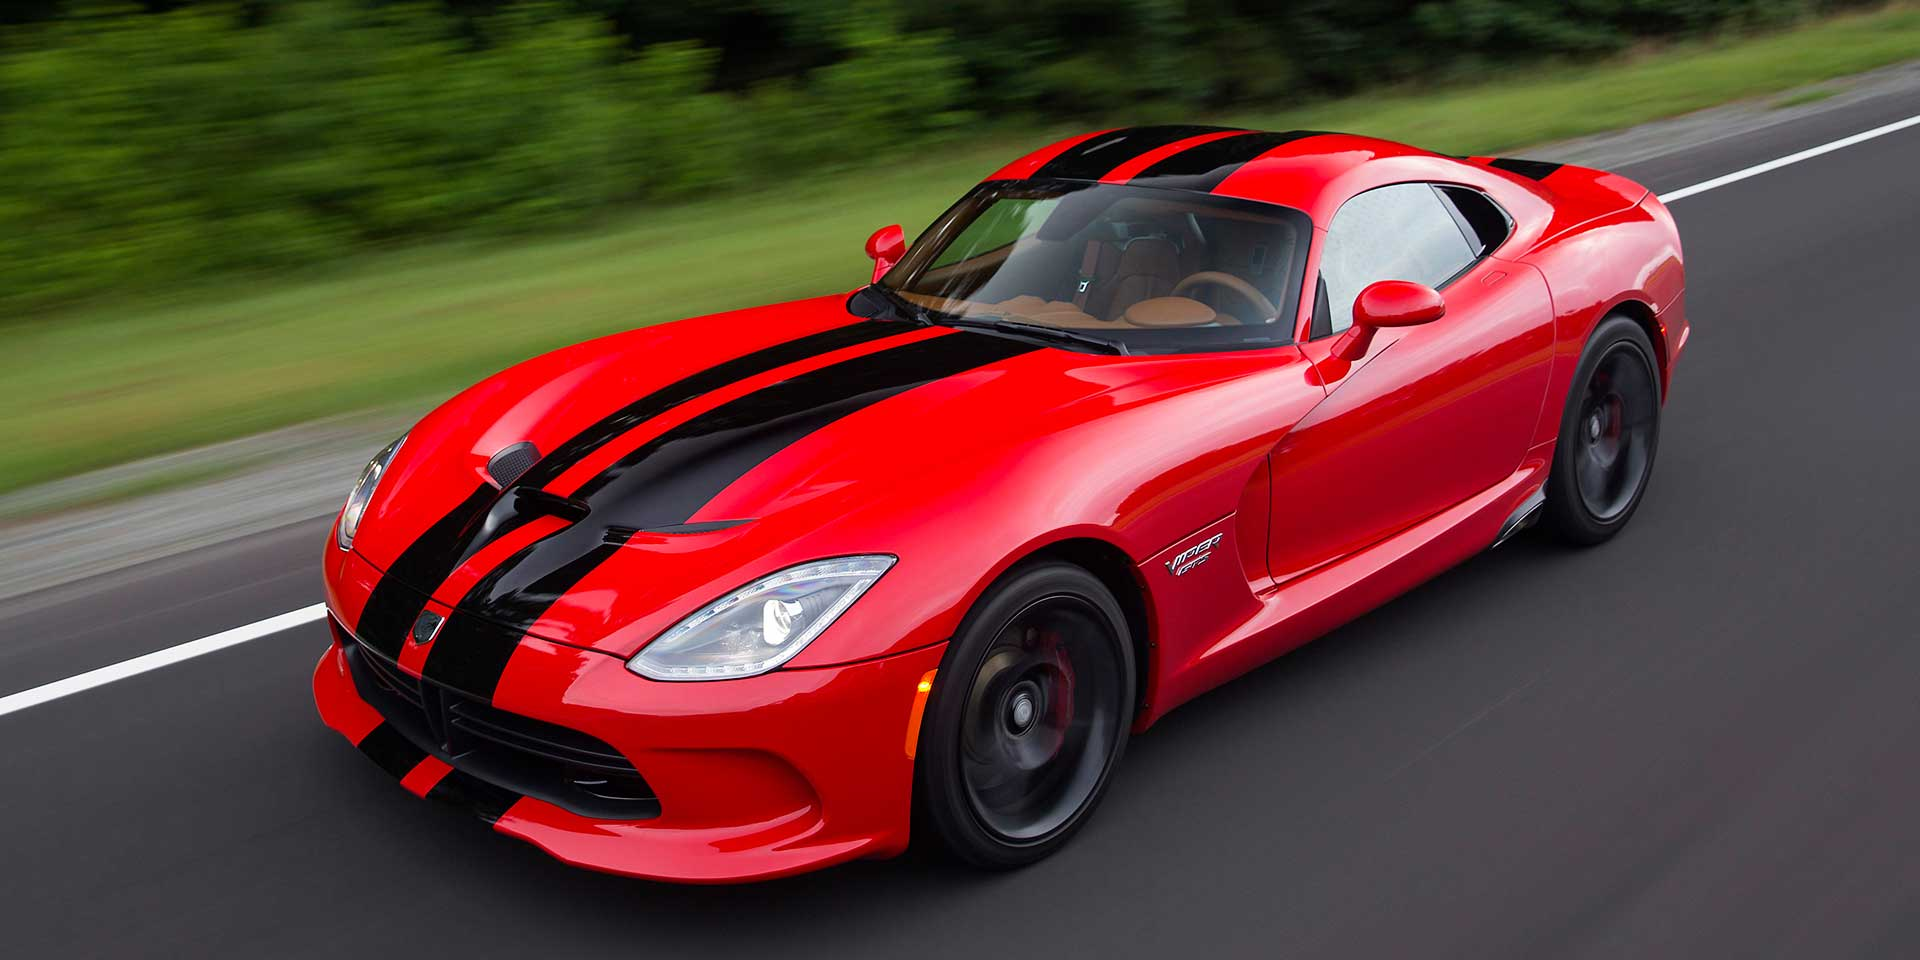 2017 Dodge Viper: The 2017 Dodge Viper Is A Two Seat Ultra High Performance Sports  Car That Competes With The Chevrolet Corvette And Porsche 911.